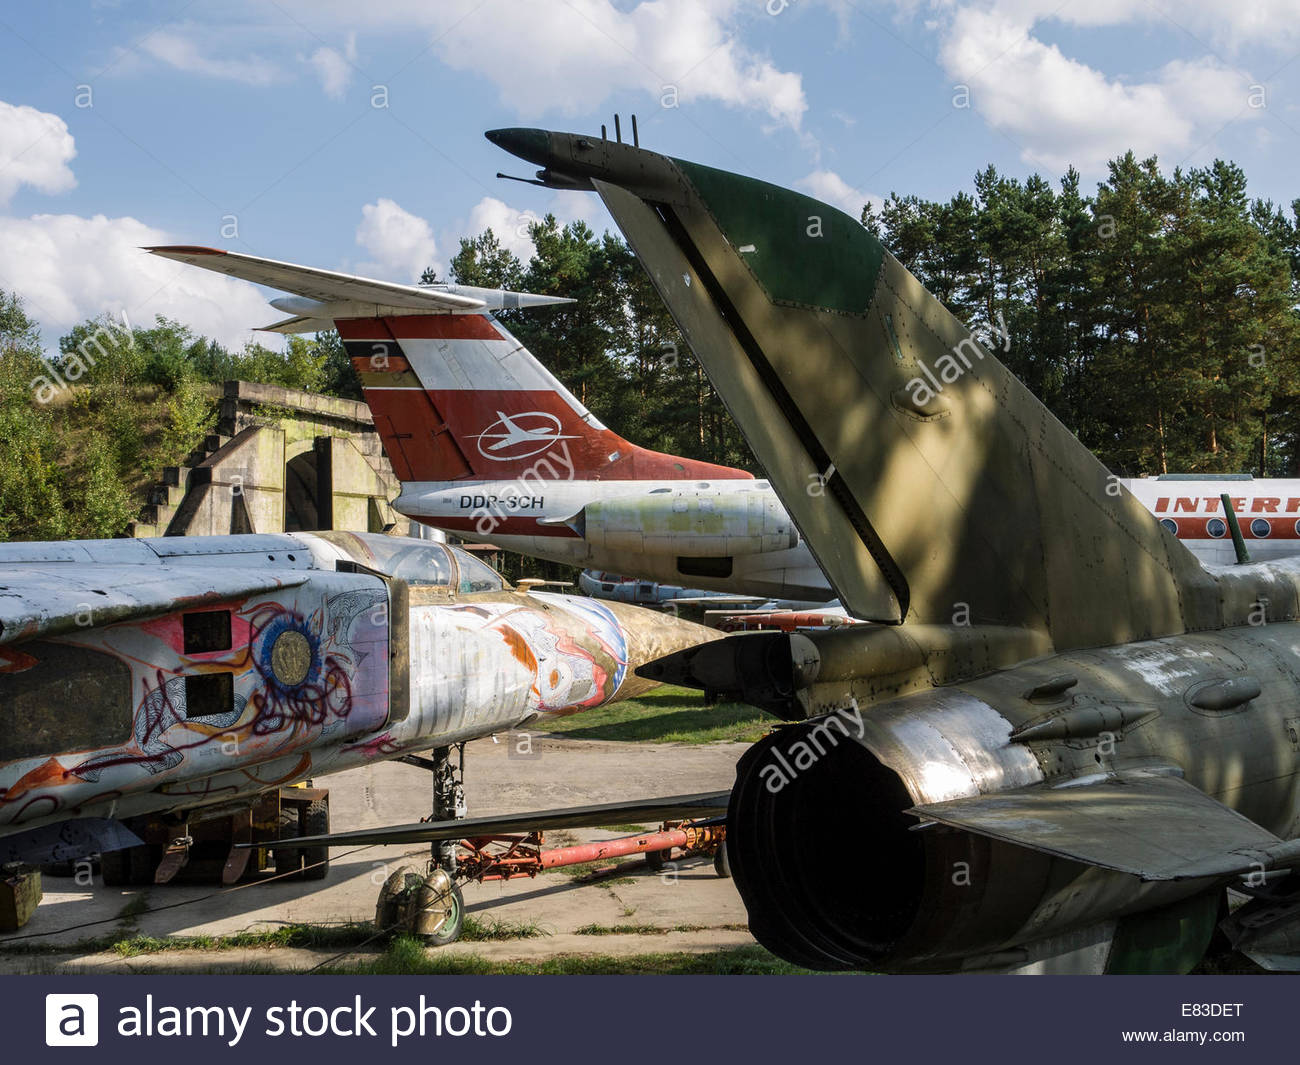 Old Soviet Airfield base at Finow  former DDR East Germany Aircraft remains left behind by Russians  Museum Cold - Stock Image